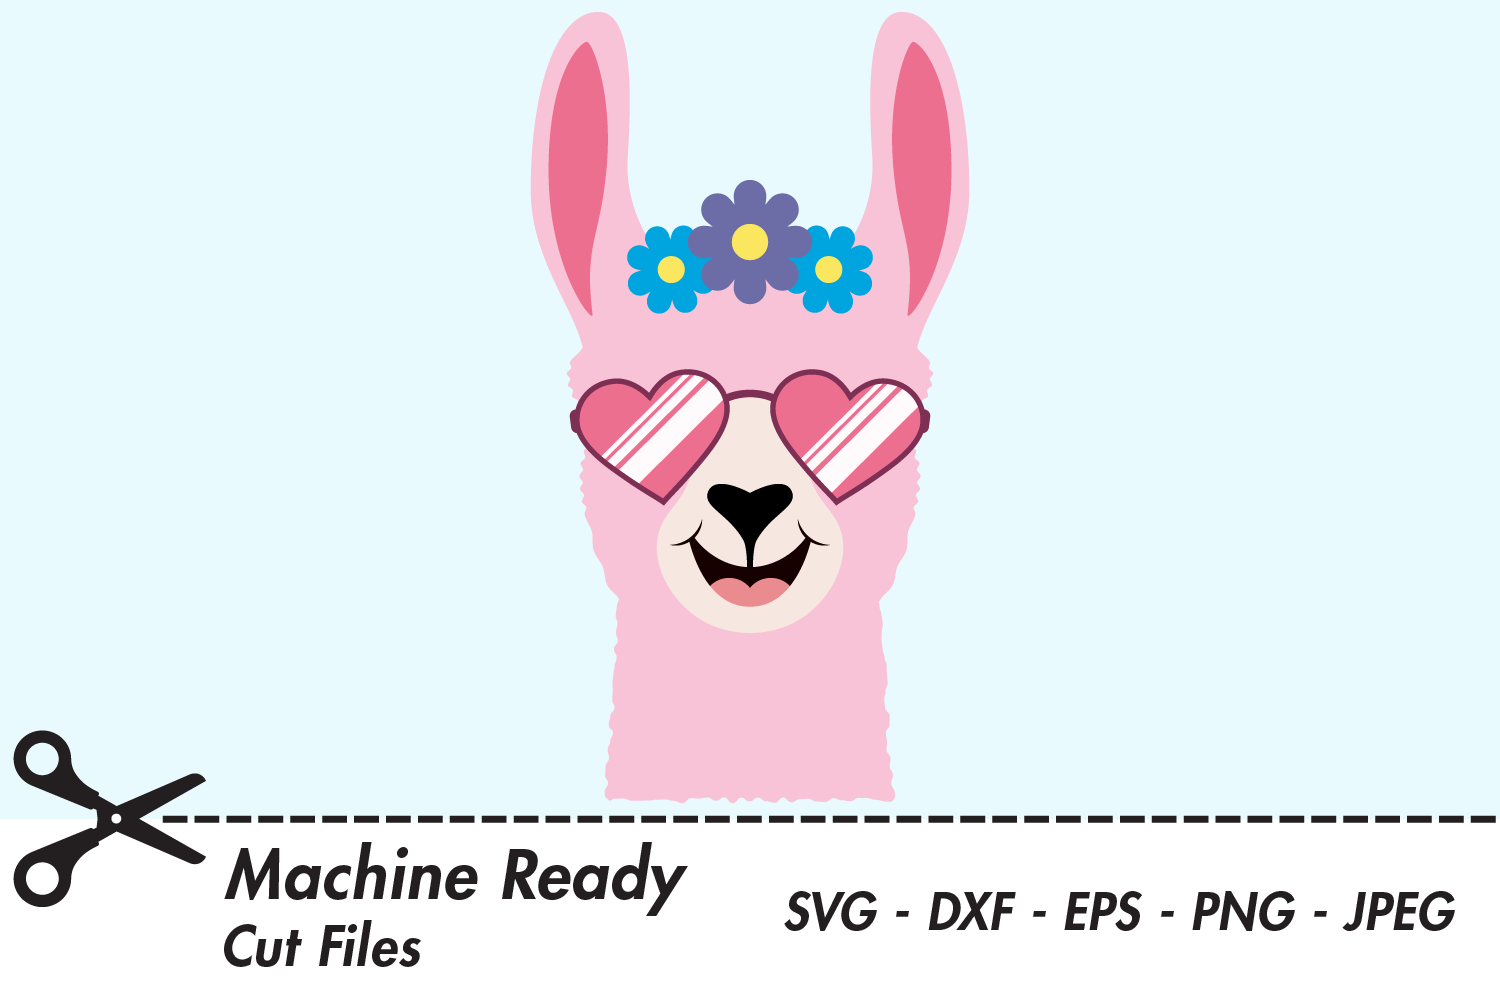 Download Free Cute Girl Llama Face With Shades Graphic By Captaincreative for Cricut Explore, Silhouette and other cutting machines.